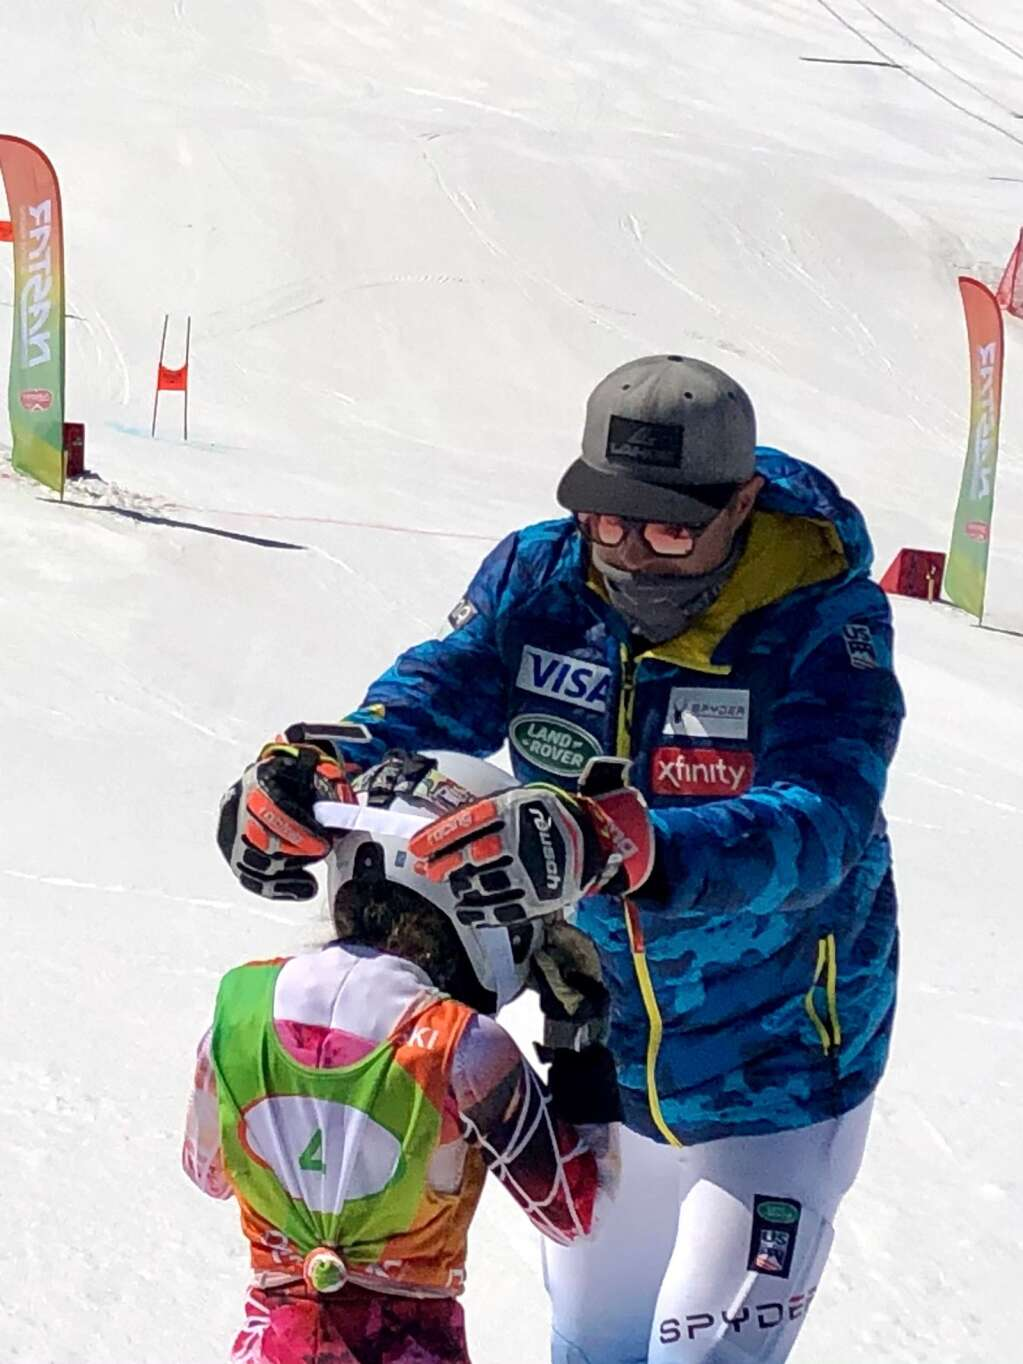 Luke Winters gives a bronze medal to NASTAR Platinum division racer Isabelle Taylor after the head-to-head finals on April 10 at Snowmass Ski Area. | Kaya Williams/The Aspen Times